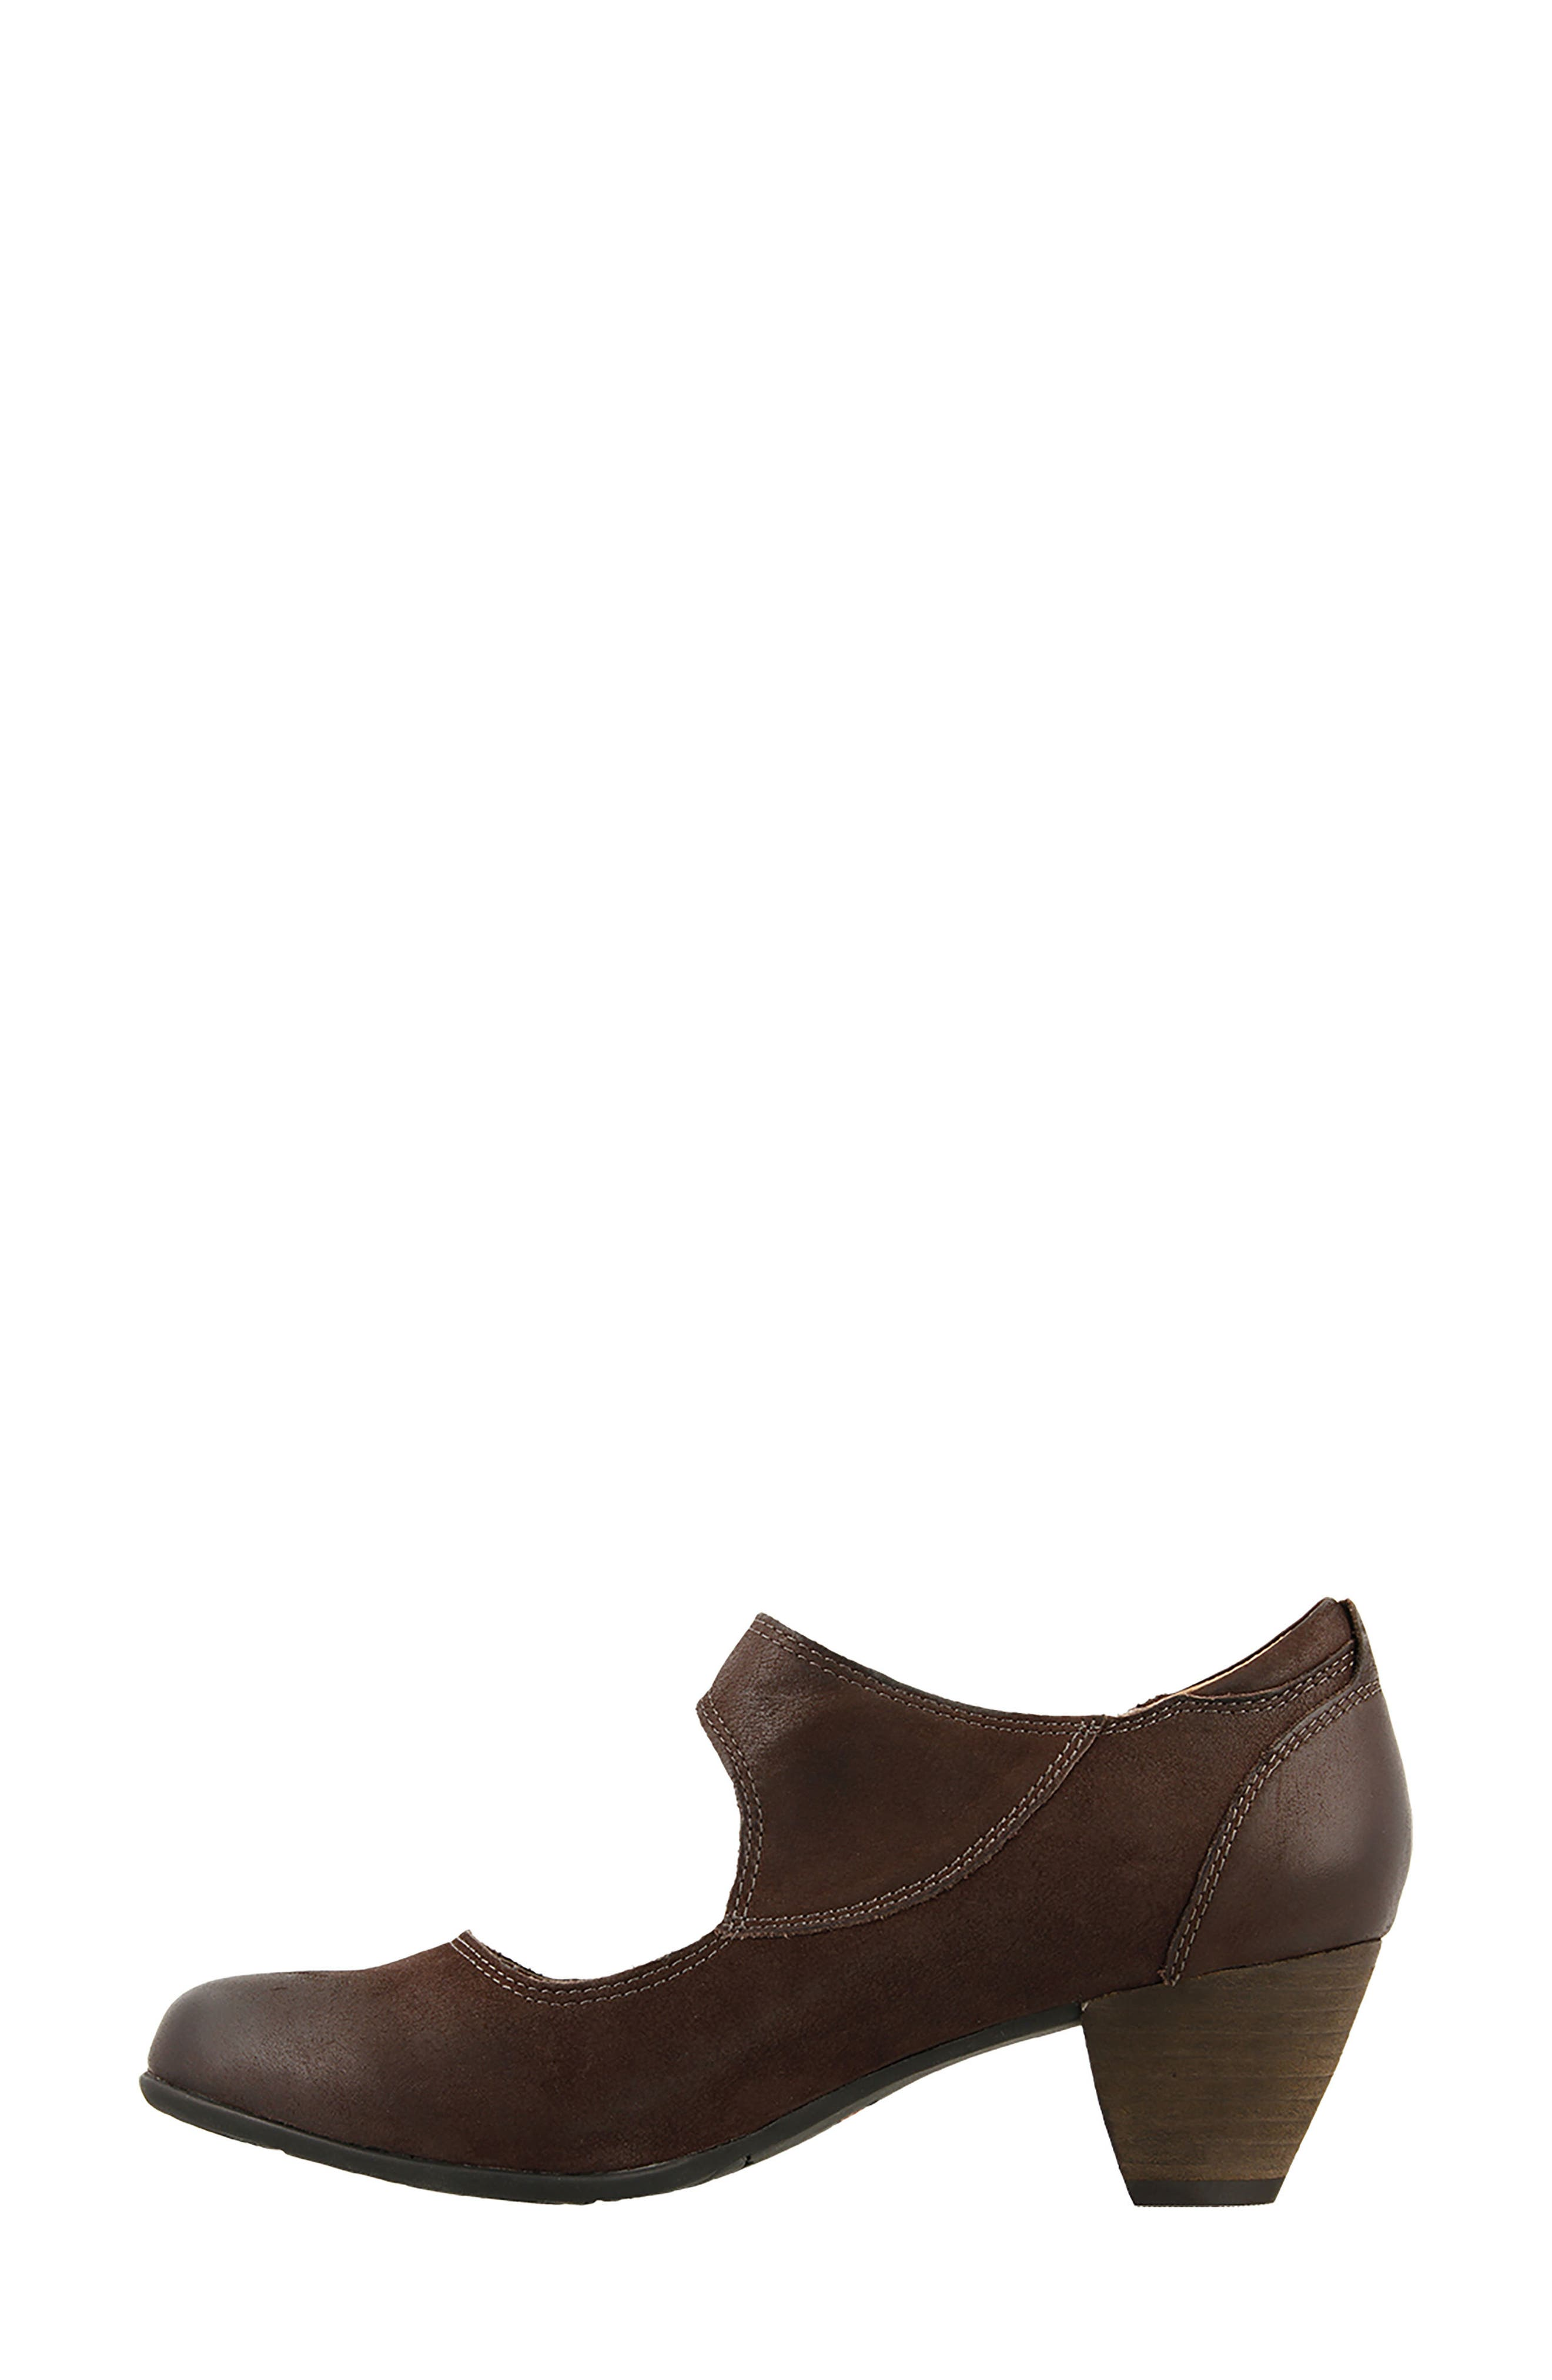 Studio Mary Jane Pump,                             Alternate thumbnail 4, color,                             Chocolate Oiled Leather